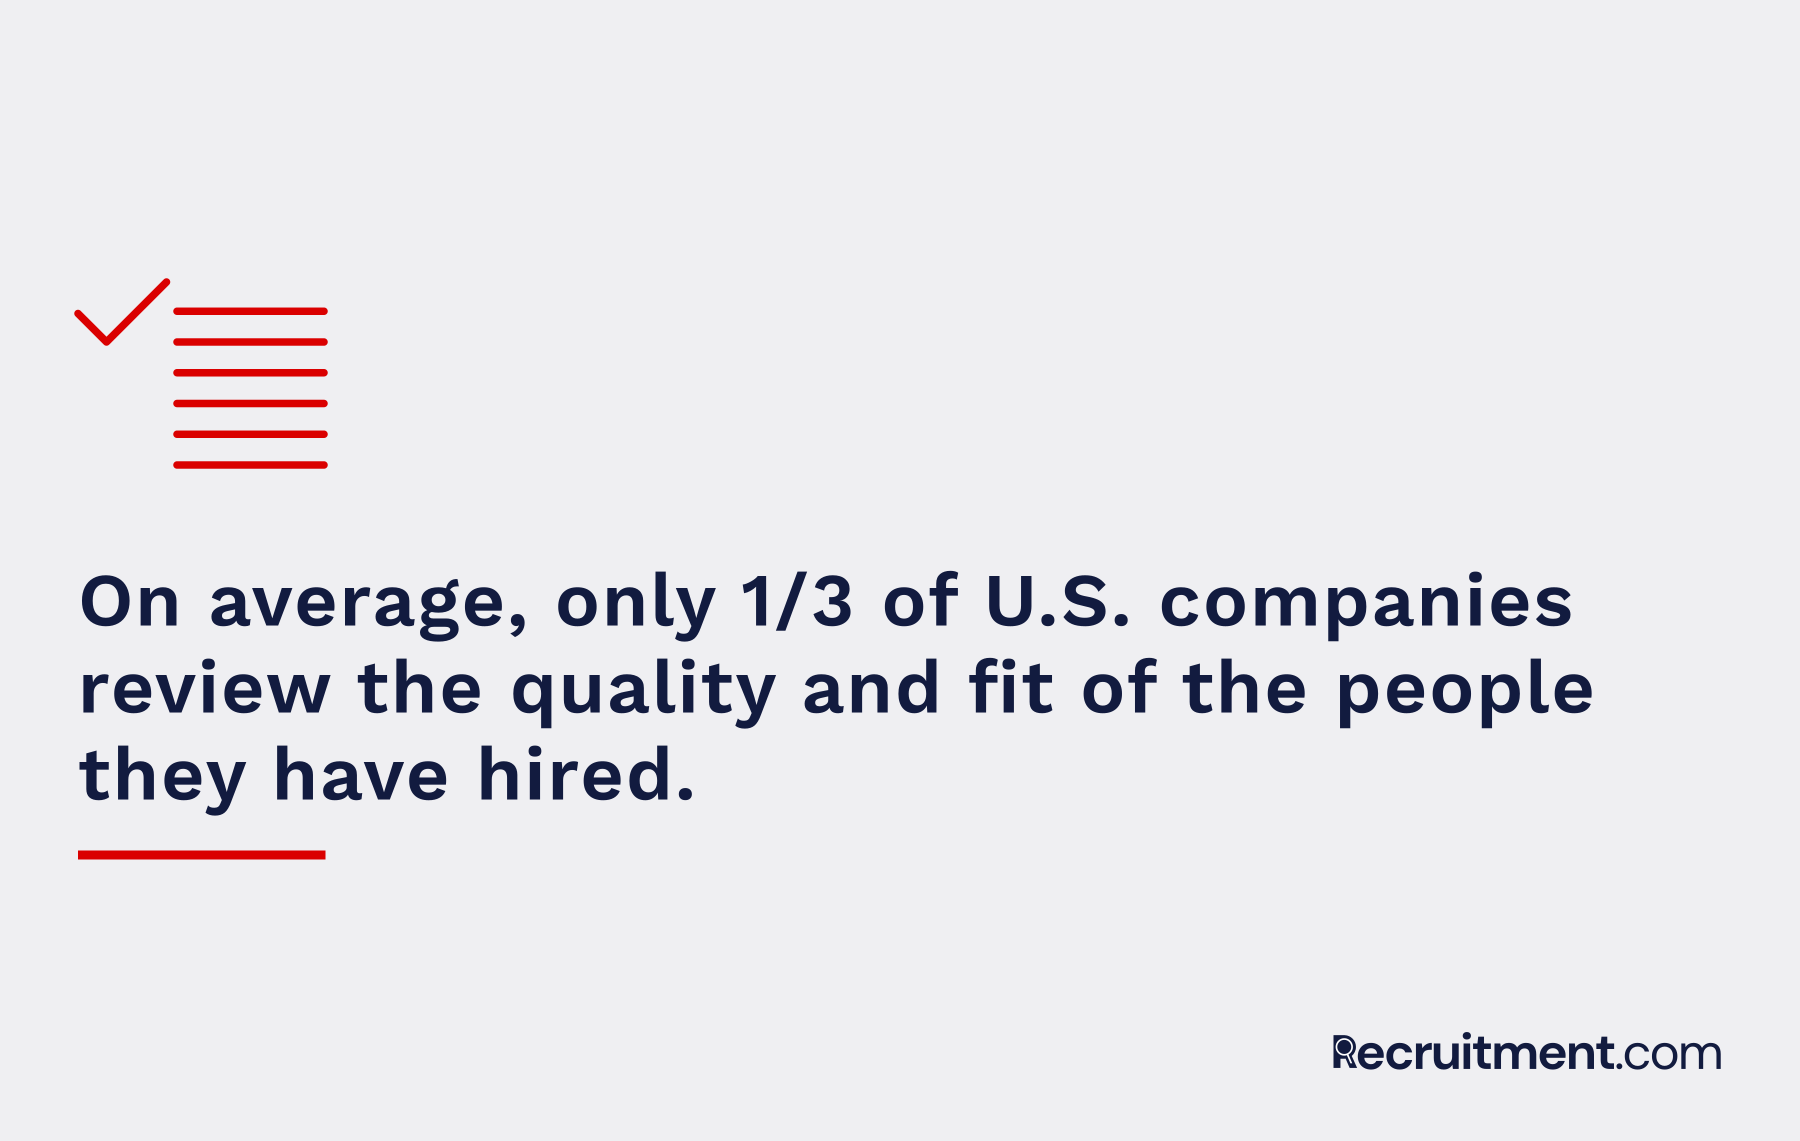 Most recruiters do not review the quality and fit of their hires.